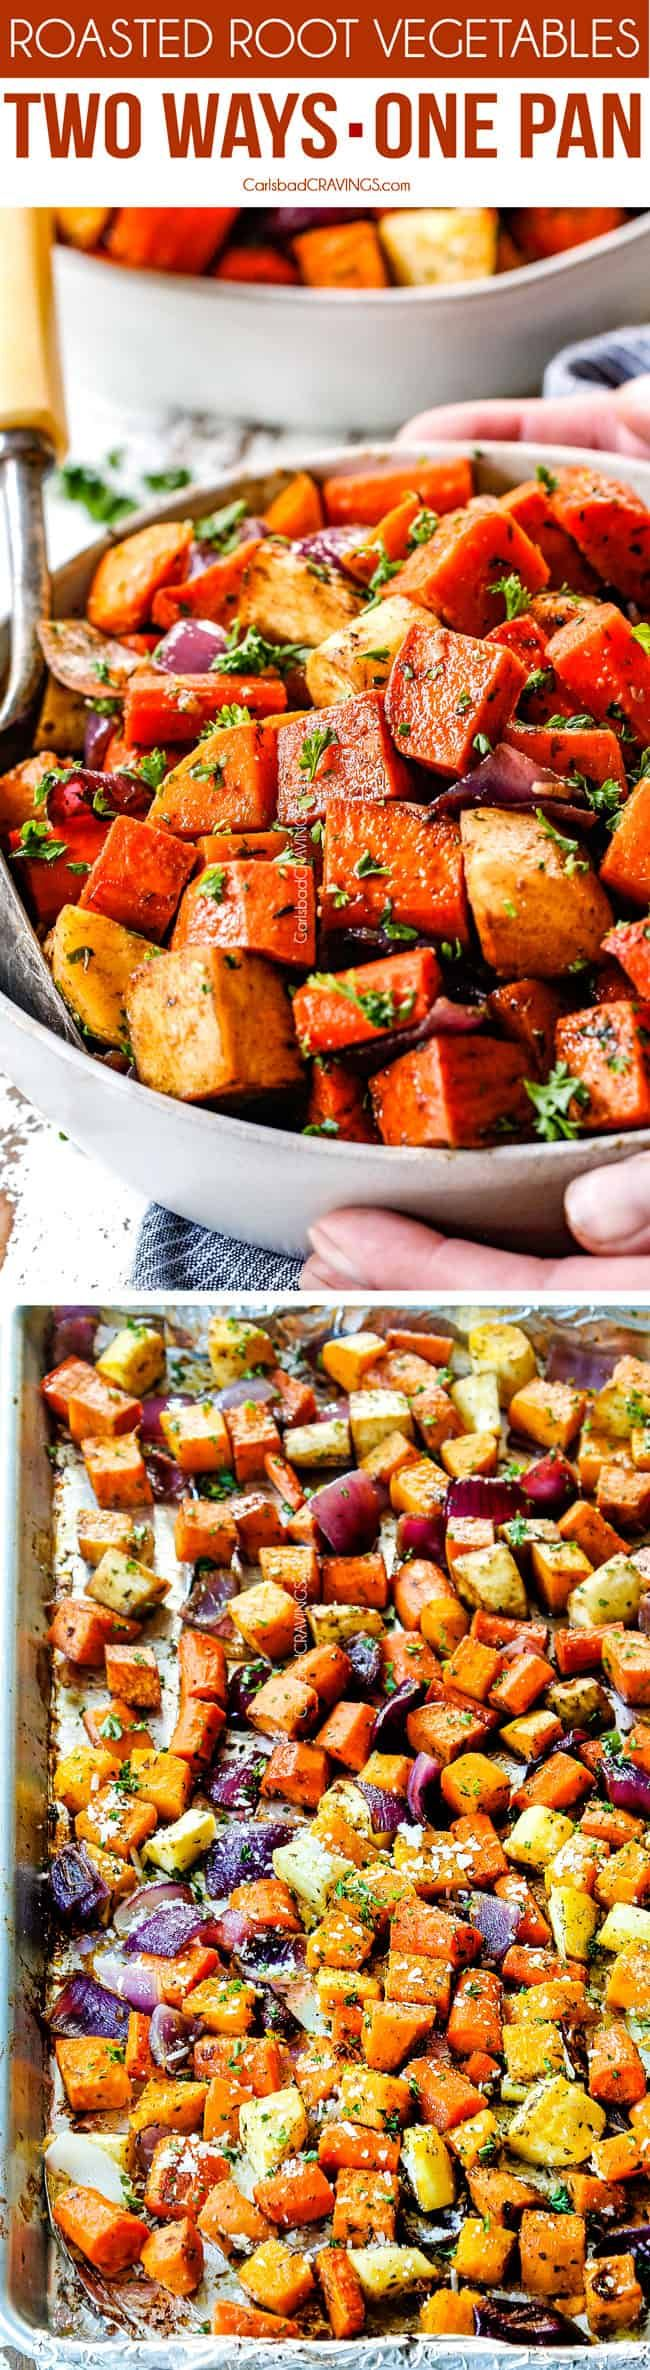 These Roasted Root Vegetables are made 2 ways in one pan for twice the flavor! OR you can pick ju